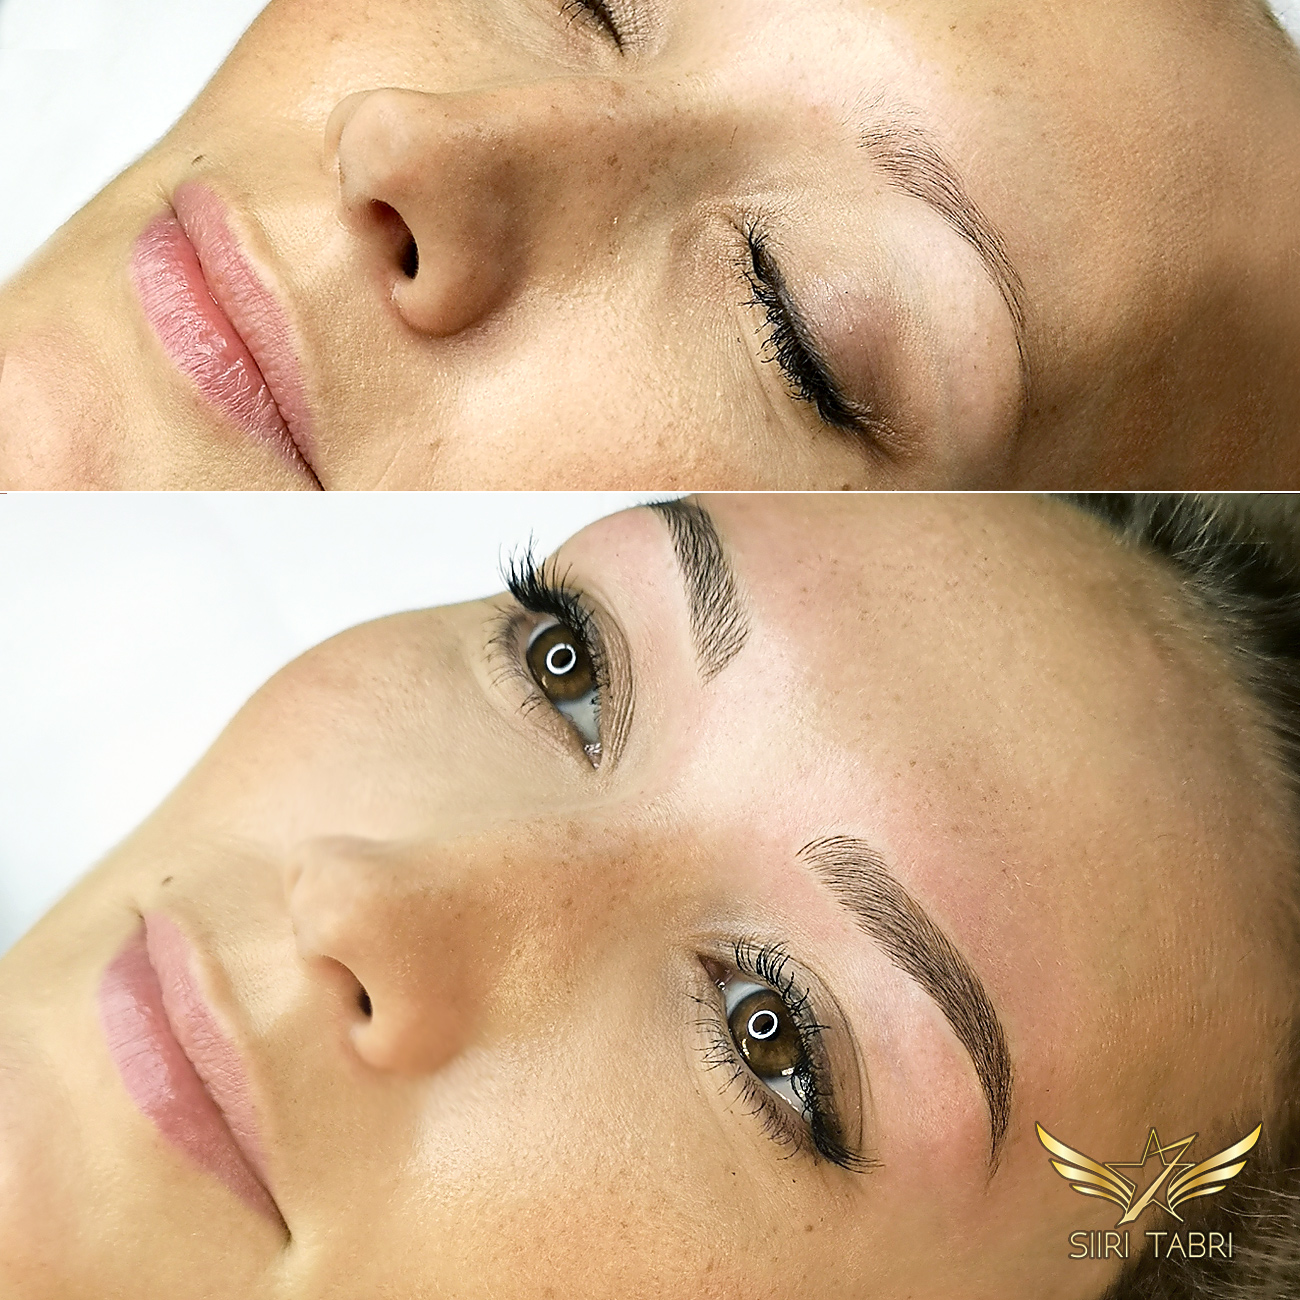 Beautiful women become even more beautiful with Light microblading.